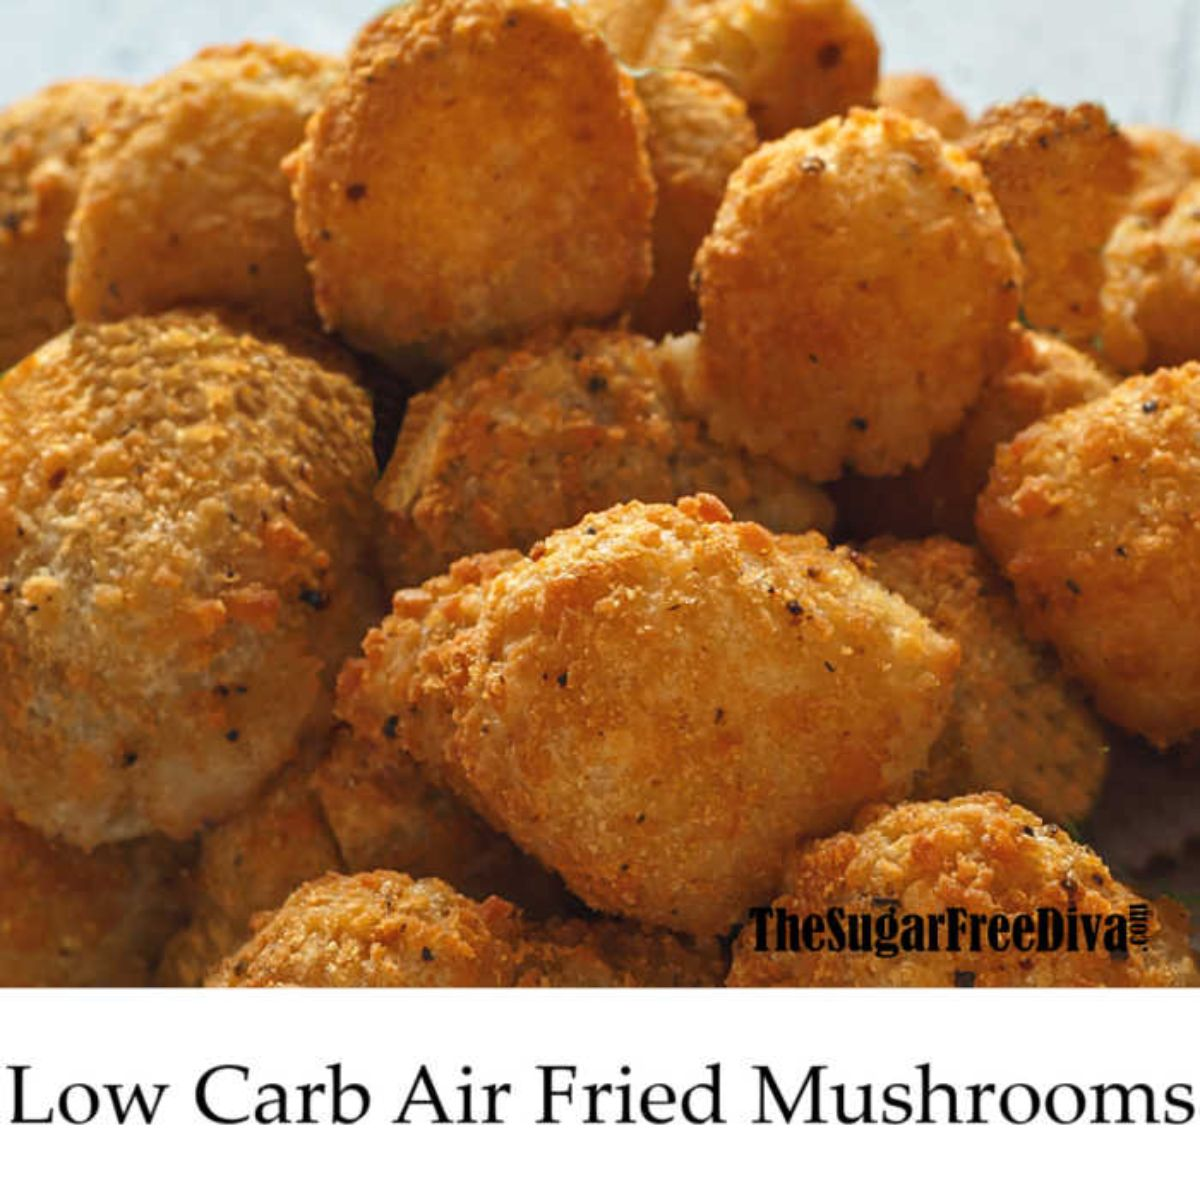 A pile of air fried breaded mushrooms